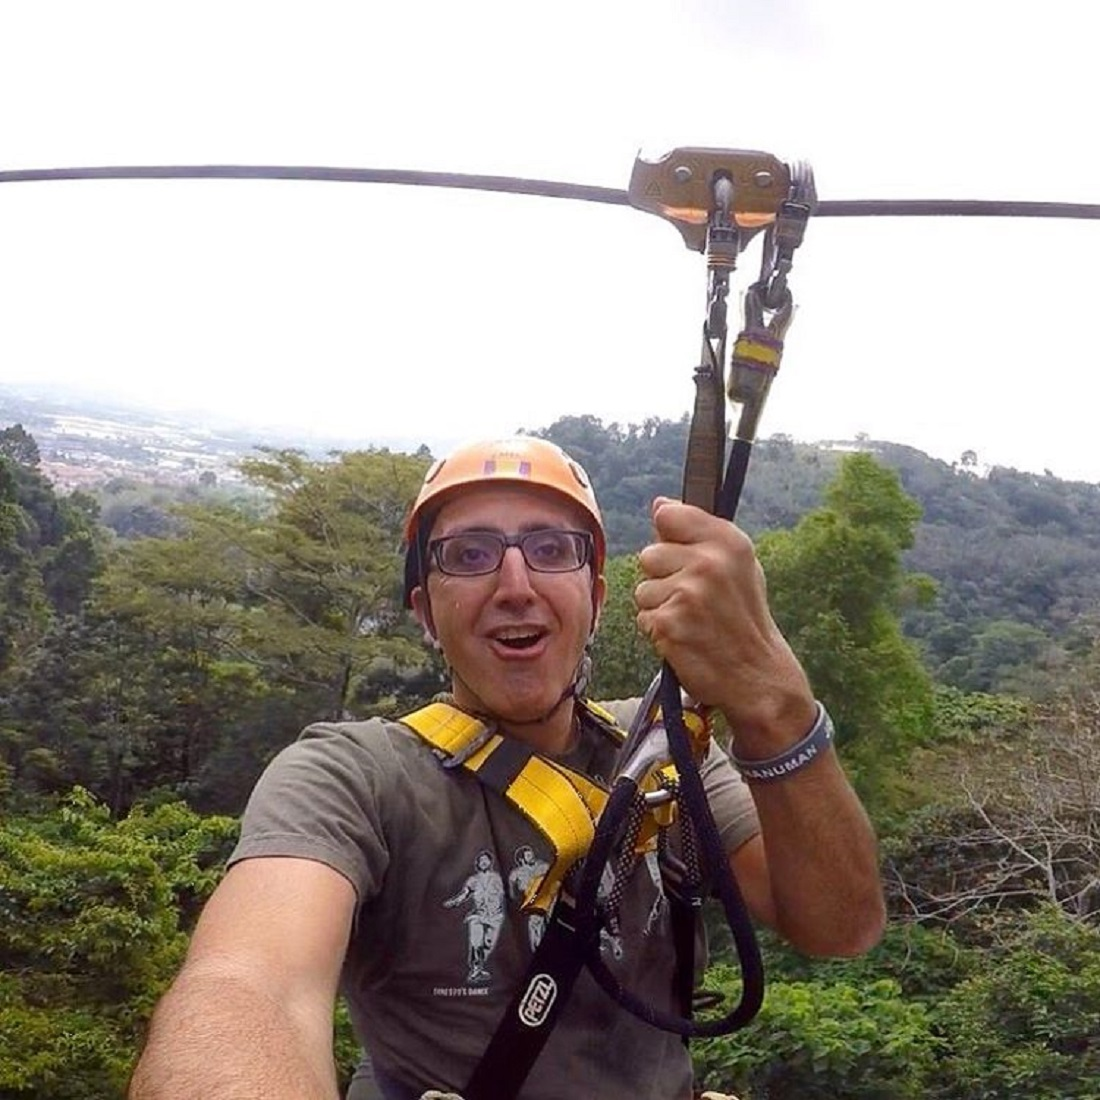 Ziplines course was intense and never felt repetitive